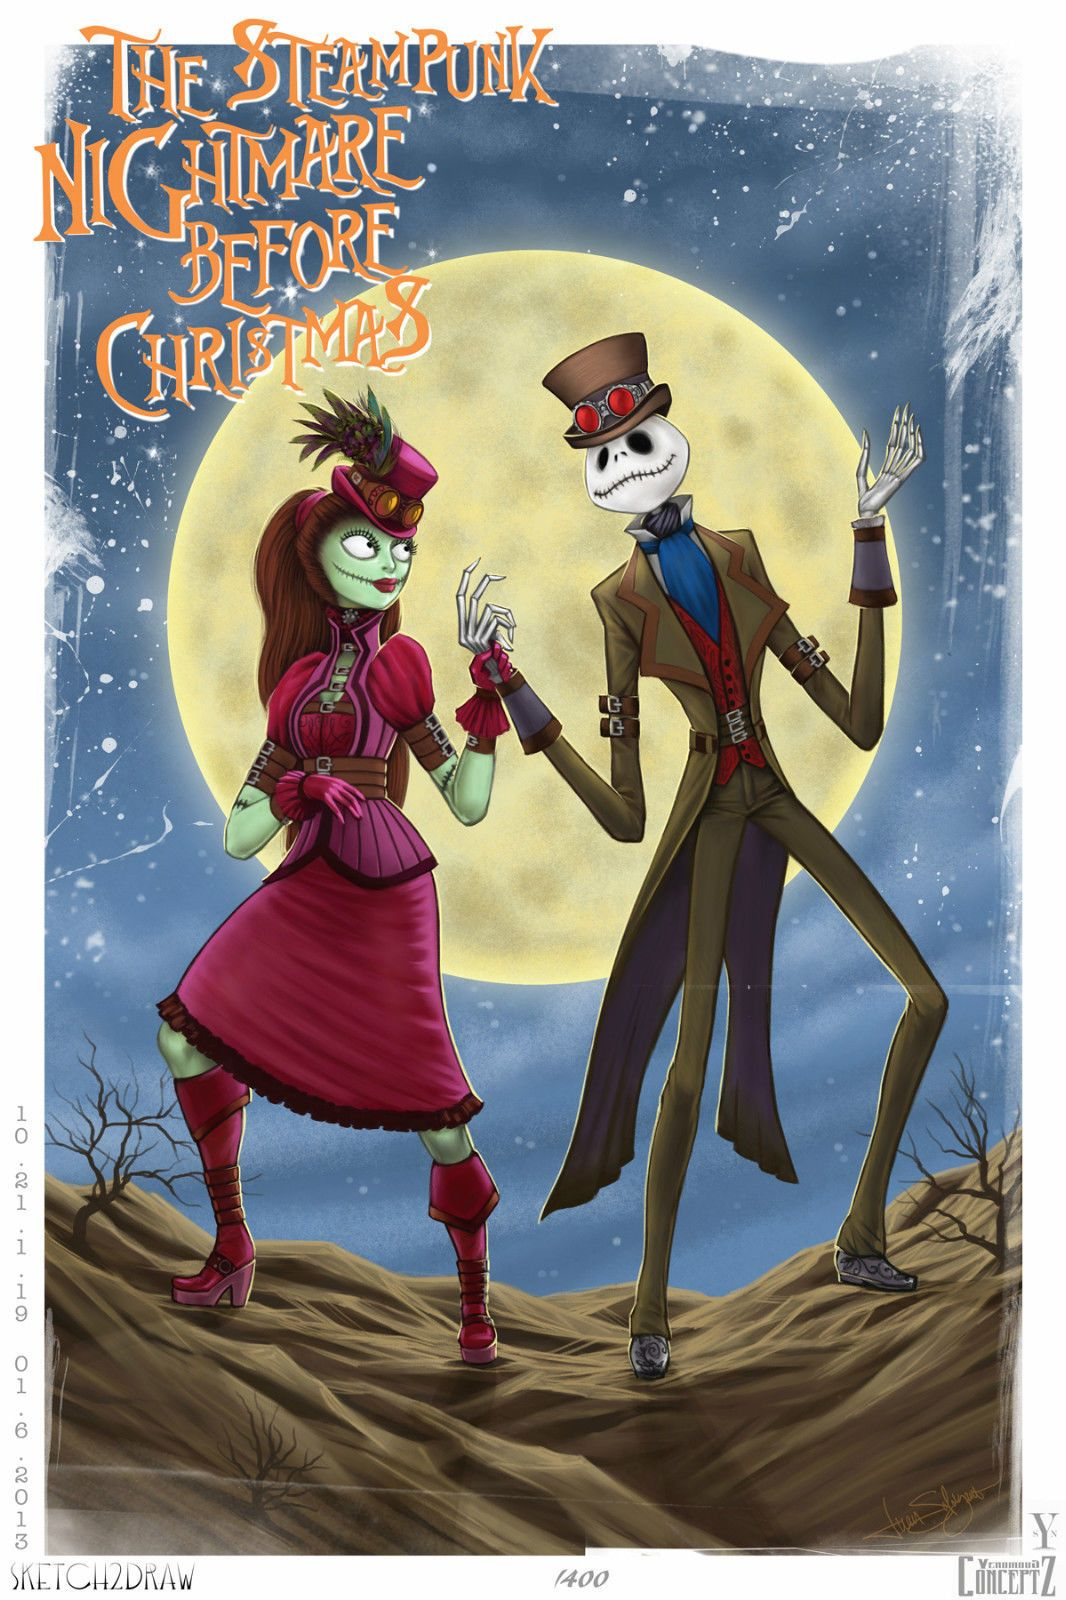 Steampunk Nightmare Before Christmas Limited Edition /400